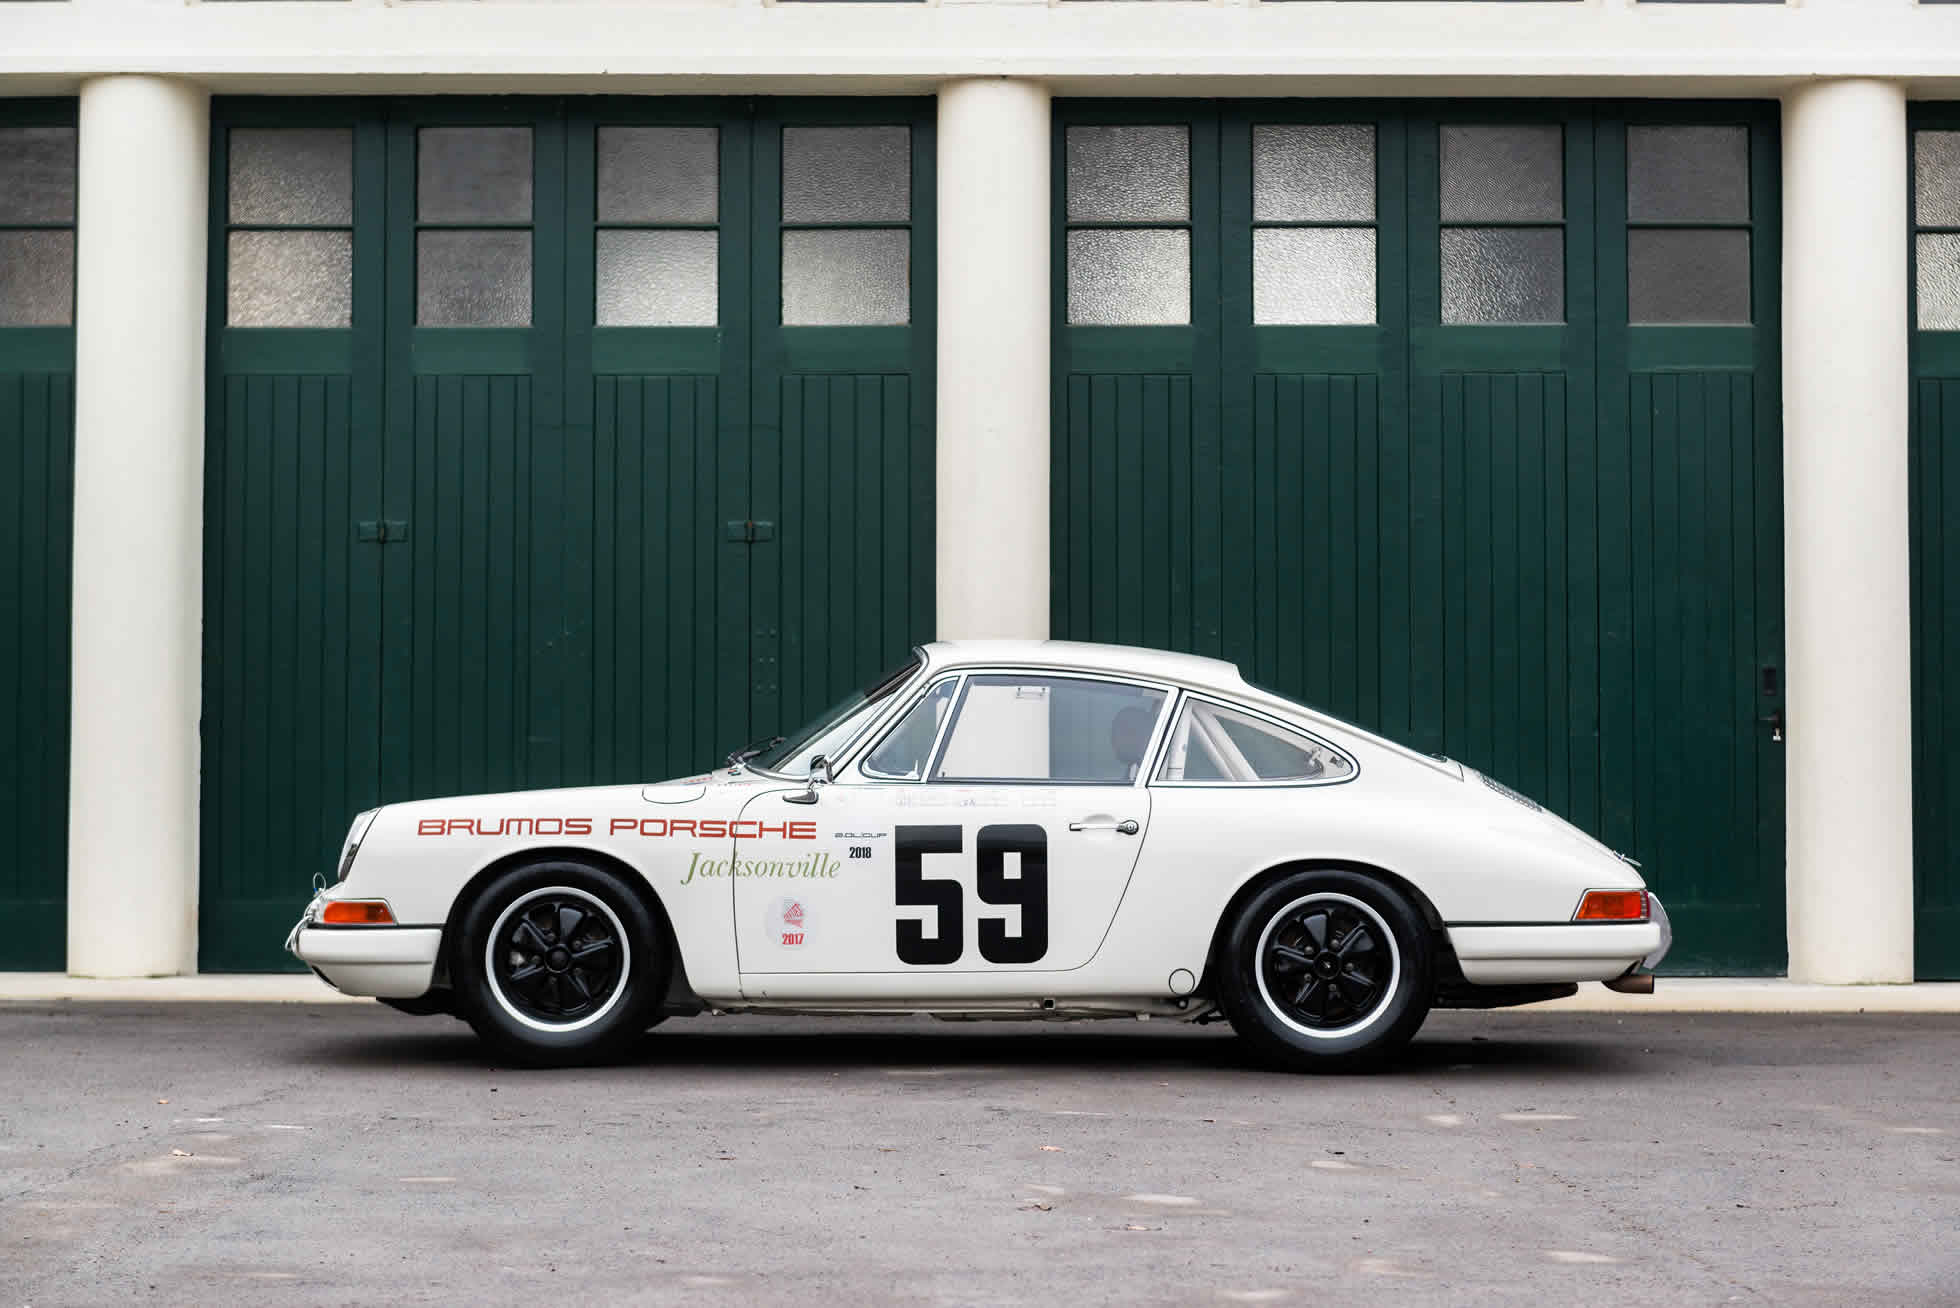 For Sale 1965 Porsche 911 2.0 SWB Race Car side view